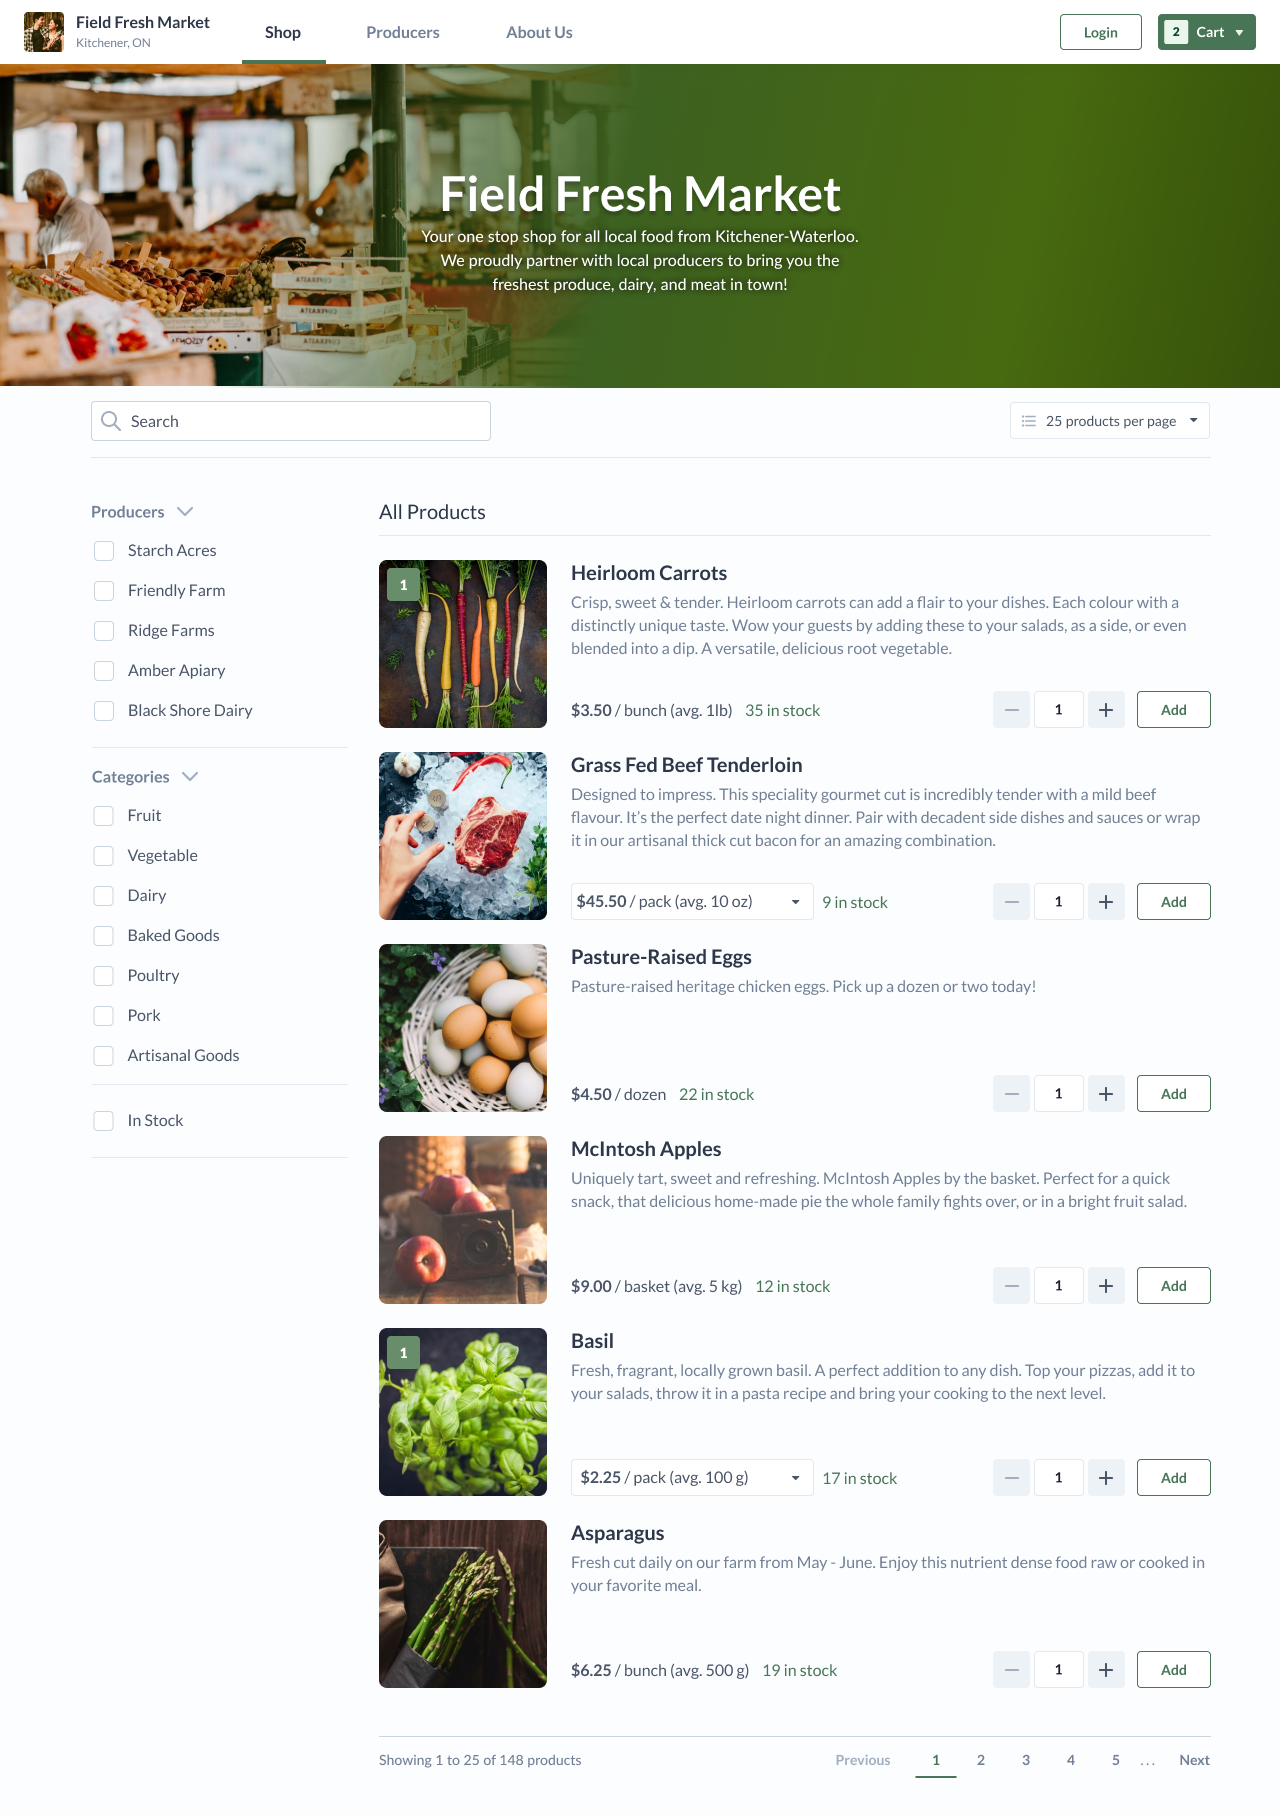 A screenshot of an online farmers market selling produce, eggs, and beef from multiple vendors.